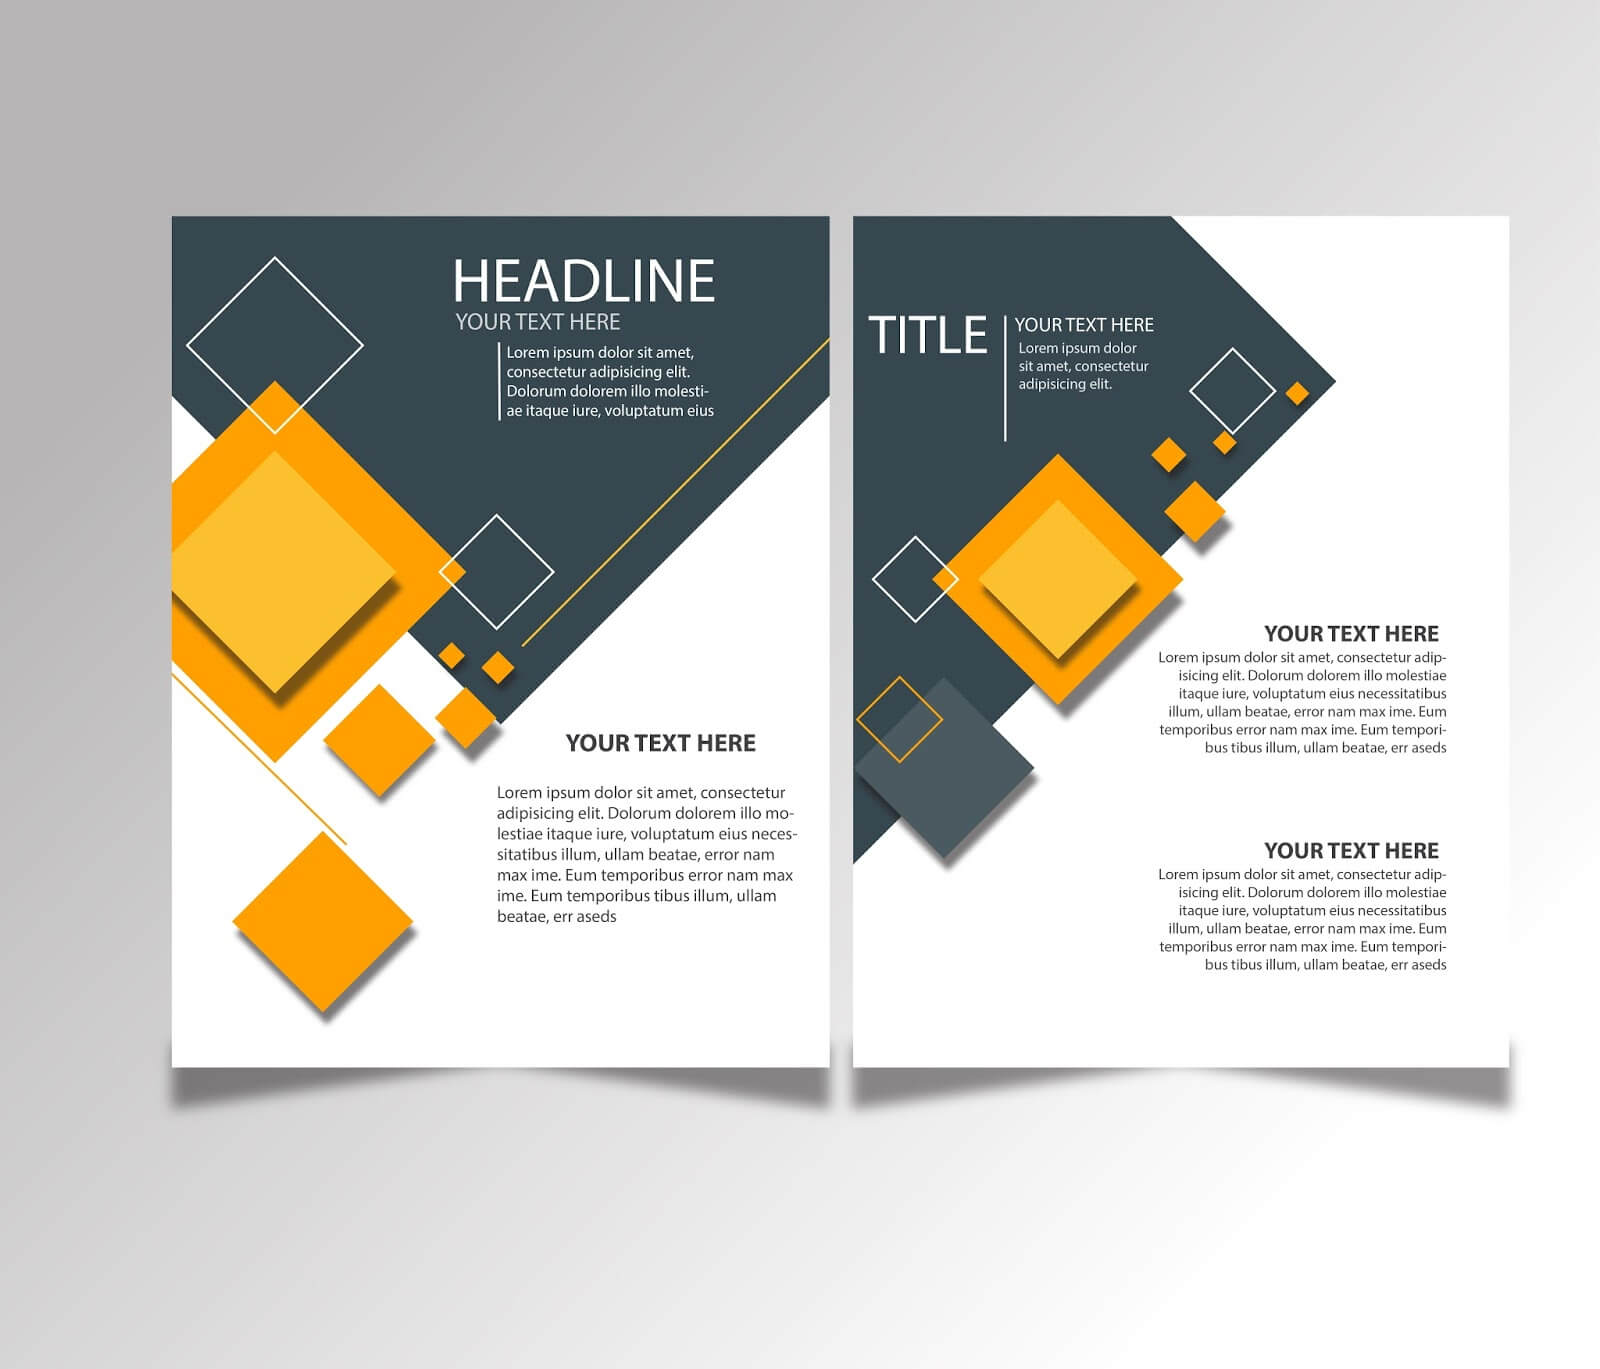 Free Download Brochure Design Templates Ai Files - Ideosprocess Regarding Adobe Illustrator Brochure Templates Free Download